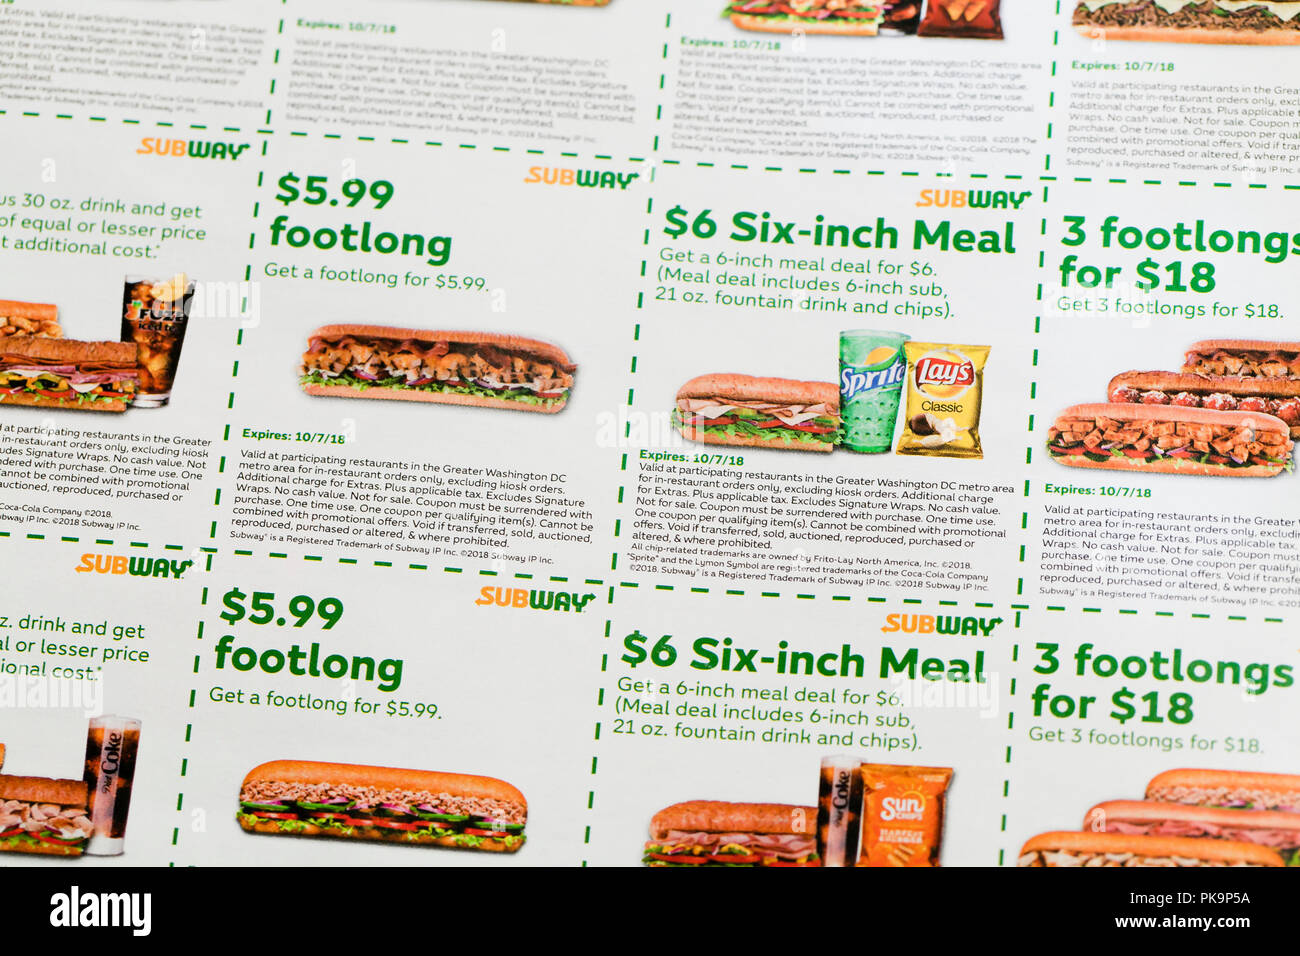 Subway Restaurant High Resolution Stock Photography And Images Alamy